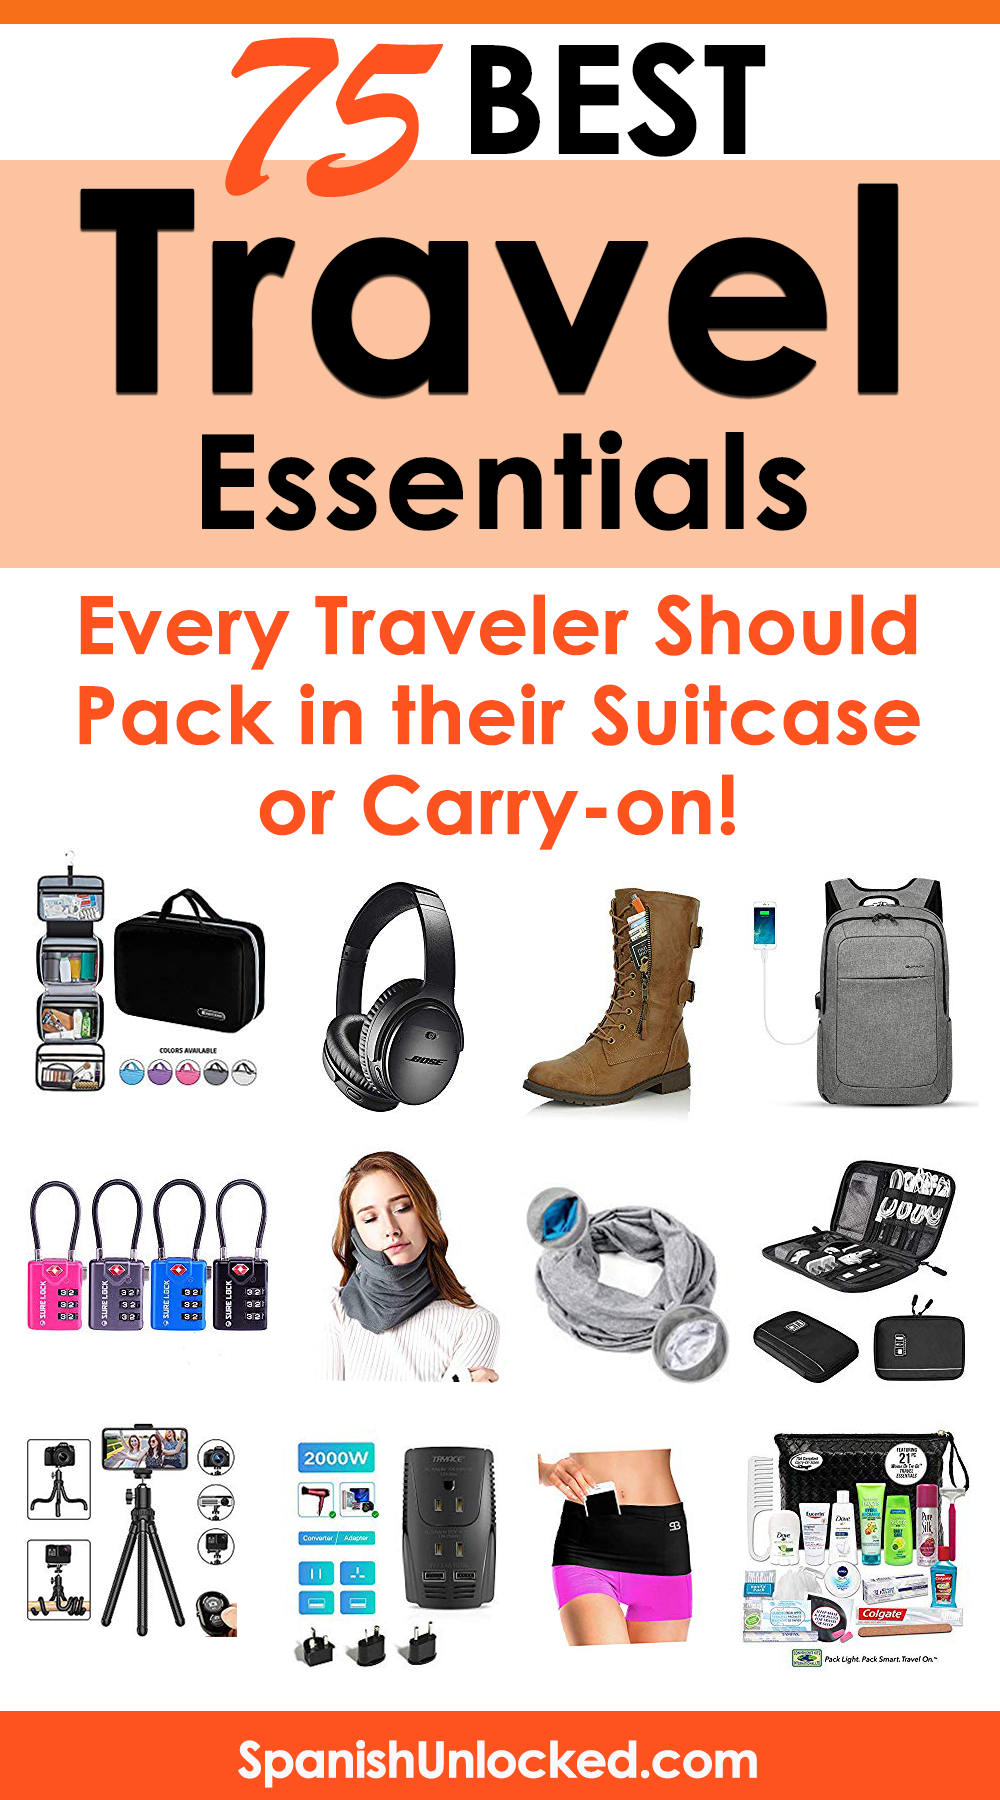 Best Travel Accessories 2021 You'll love these must have travel accessories! They are so cool